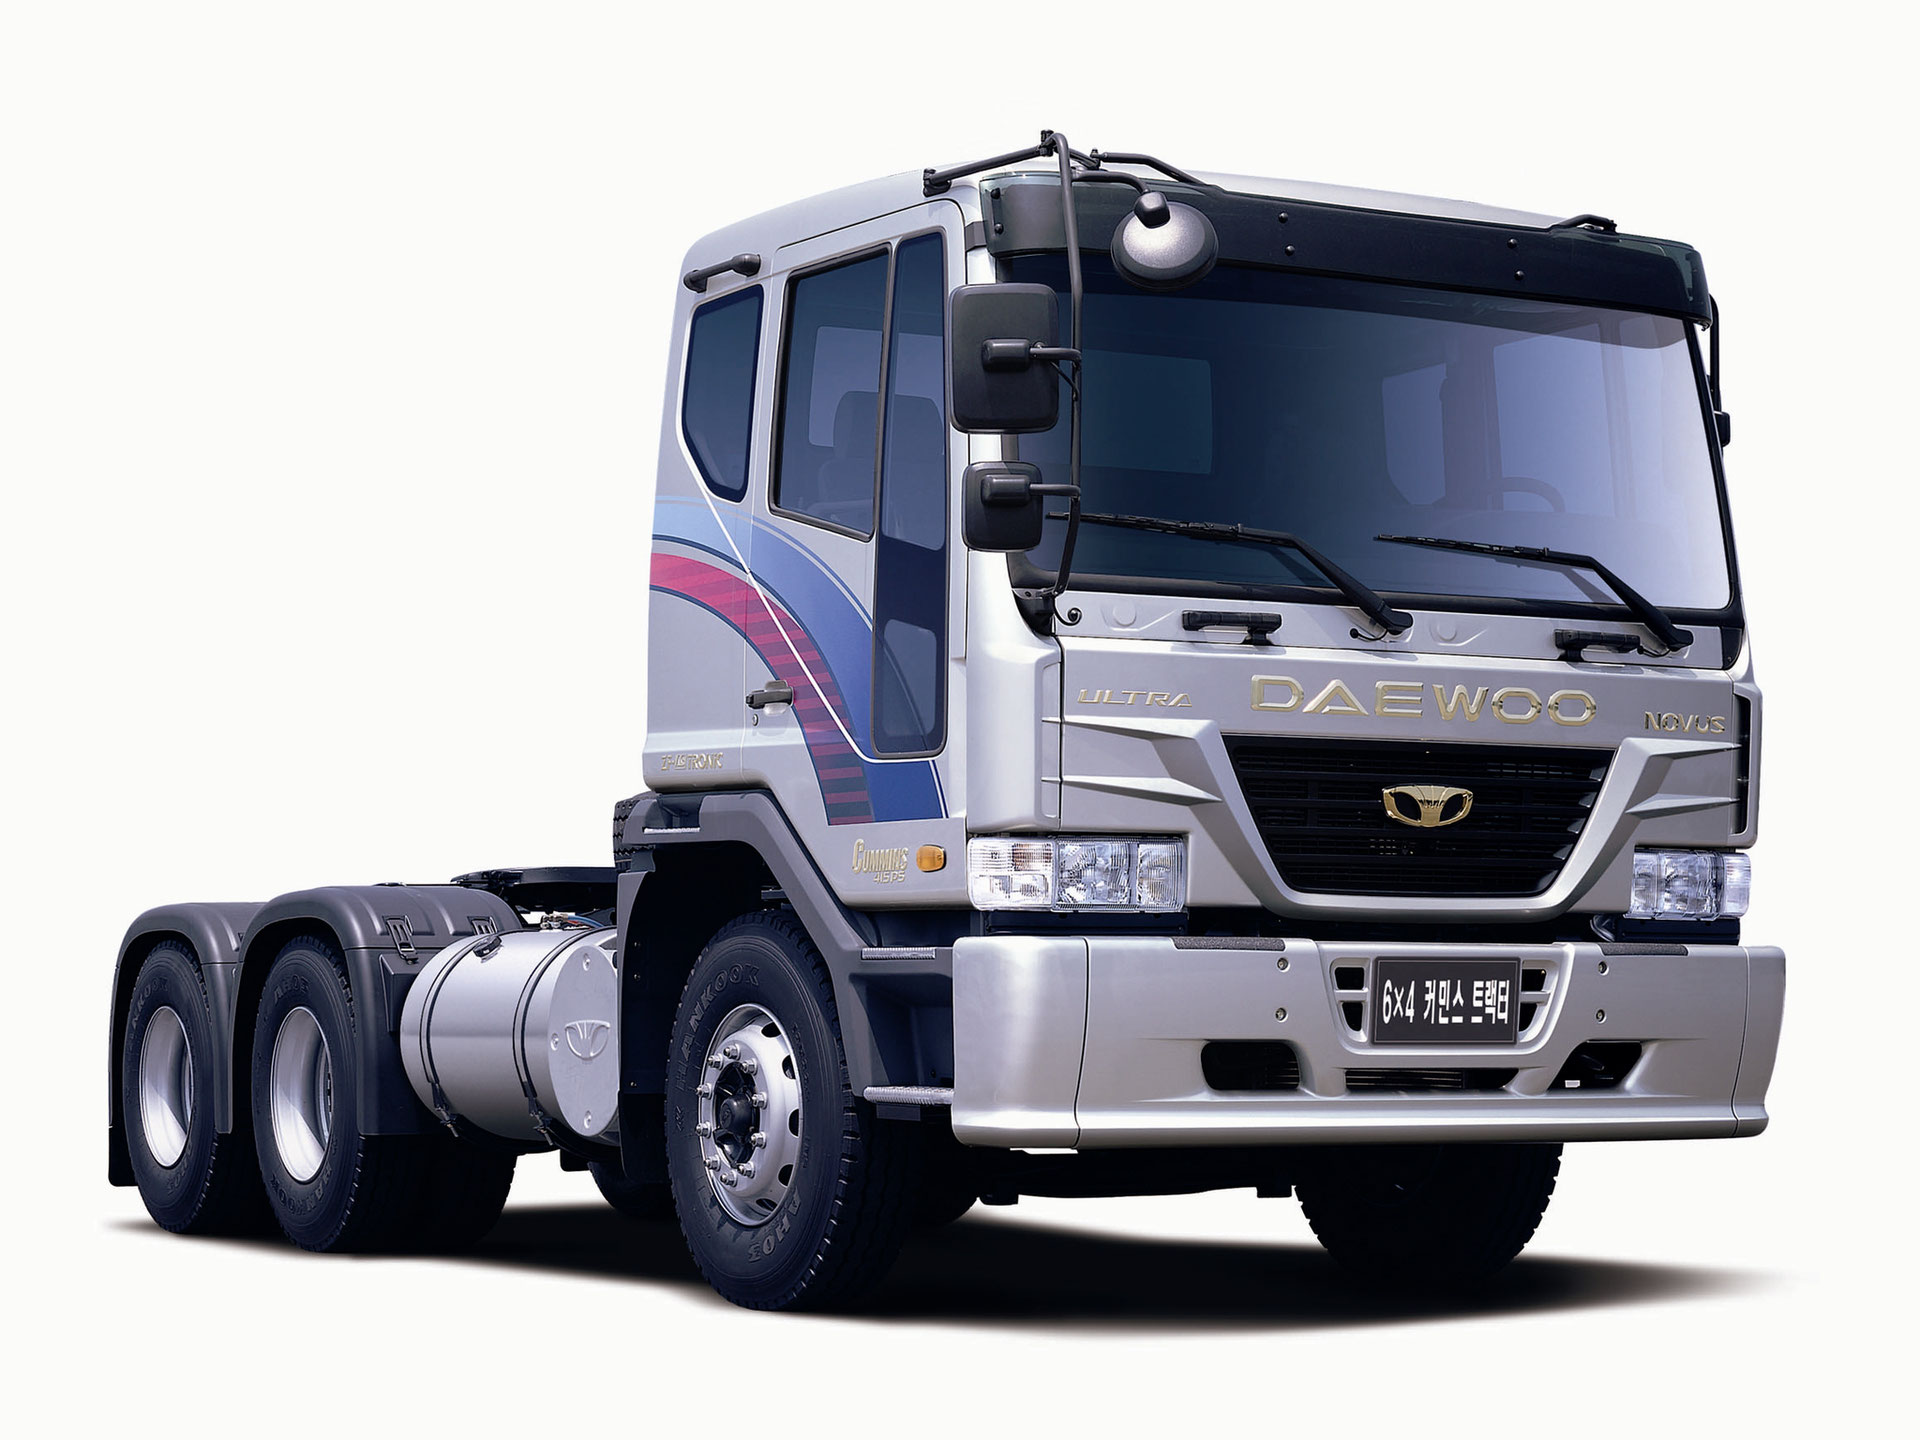 hight resolution of 9 daewoo trucks service manuals free download truck manual wiring diagrams fault codes pdf free download